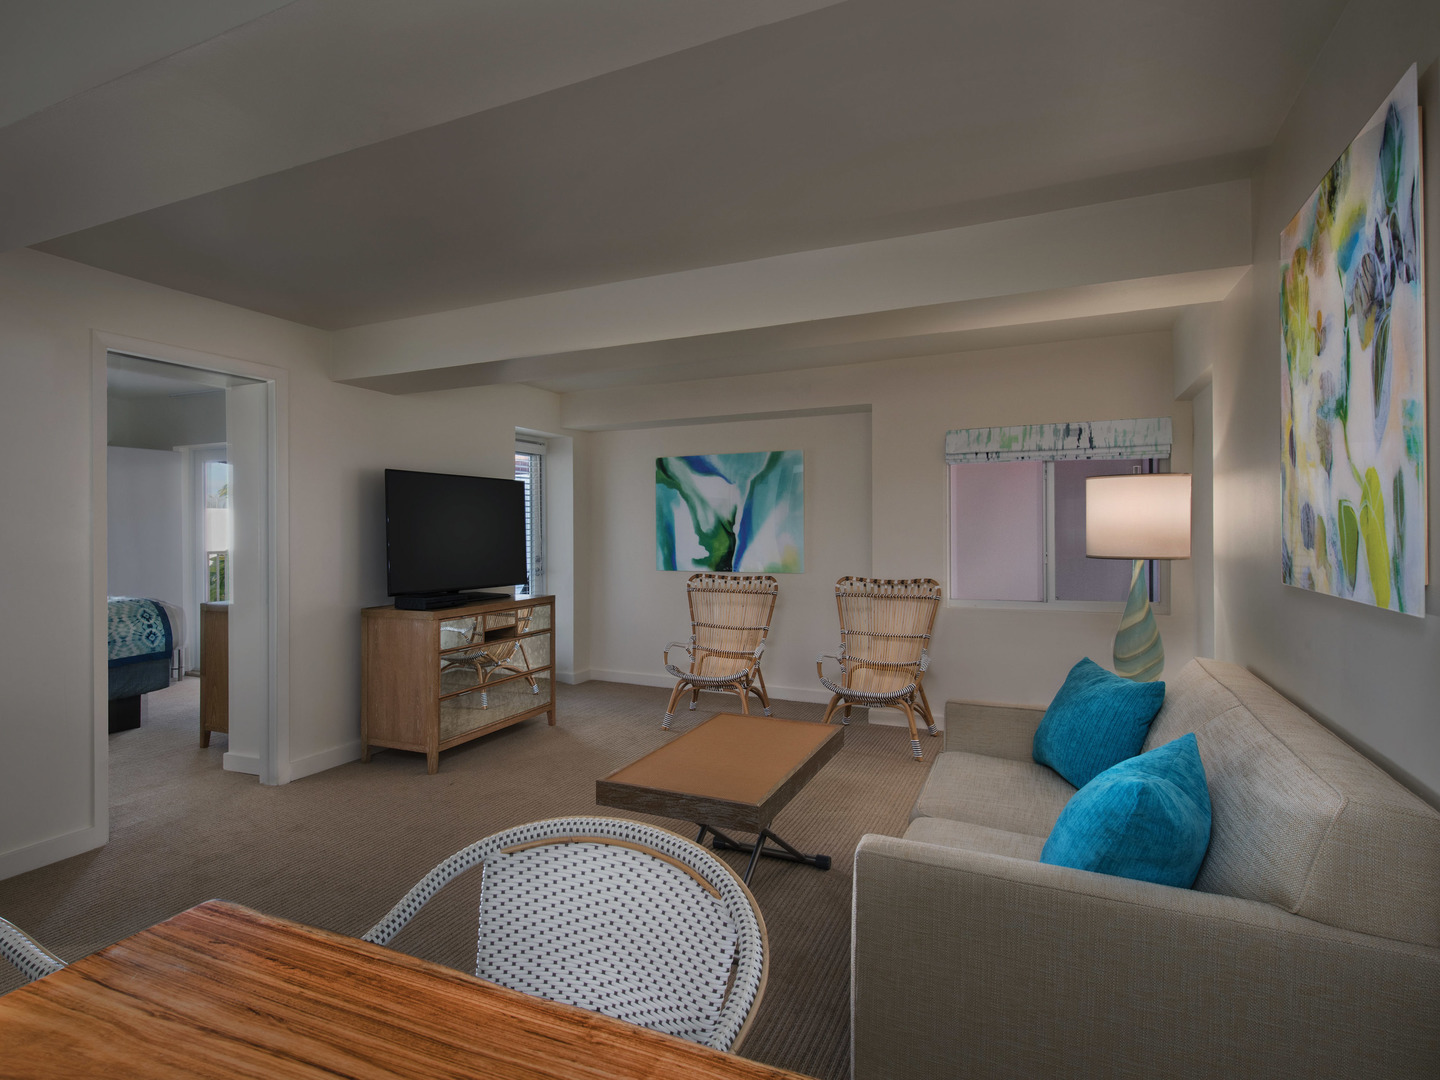 Marriott Vacation Club Pulse<span class='trademark'>®</span>, South Beach 2-Bedroom Suite Living Room. Marriott Vacation Club Pulse<span class='trademark'>®</span>, South Beach is located in Miami Beach, Florida United States.